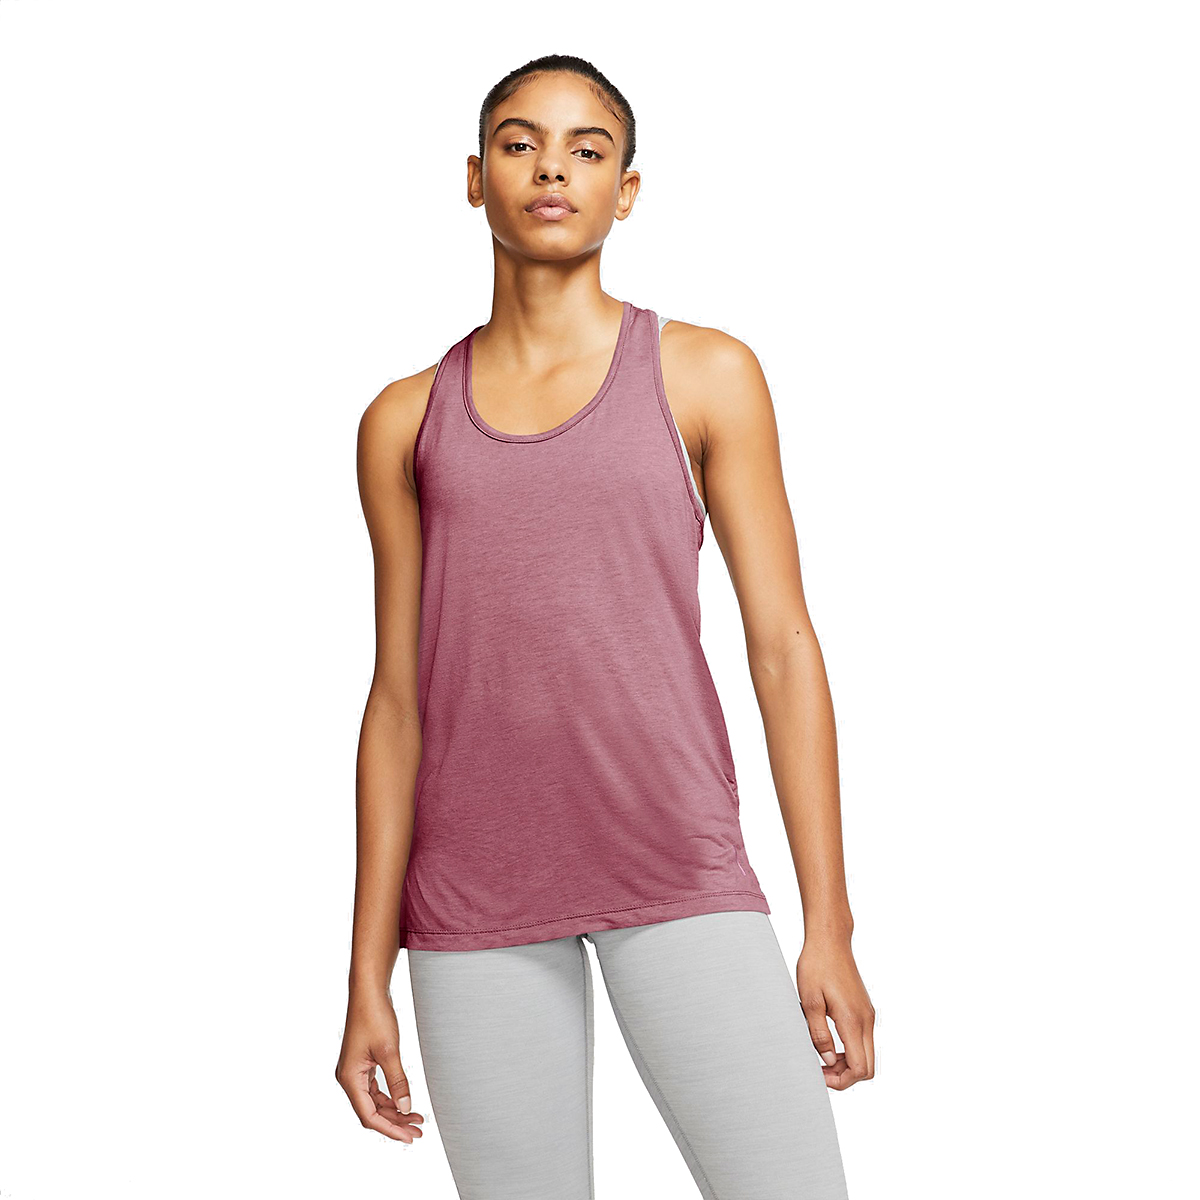 Women's Nike Yoga Layer Tank - Color: Desert Berry/Heather/Lite Arctic Pink - Size: M, Desert Berry/Heather/Lite Arctic Pink, large, image 1